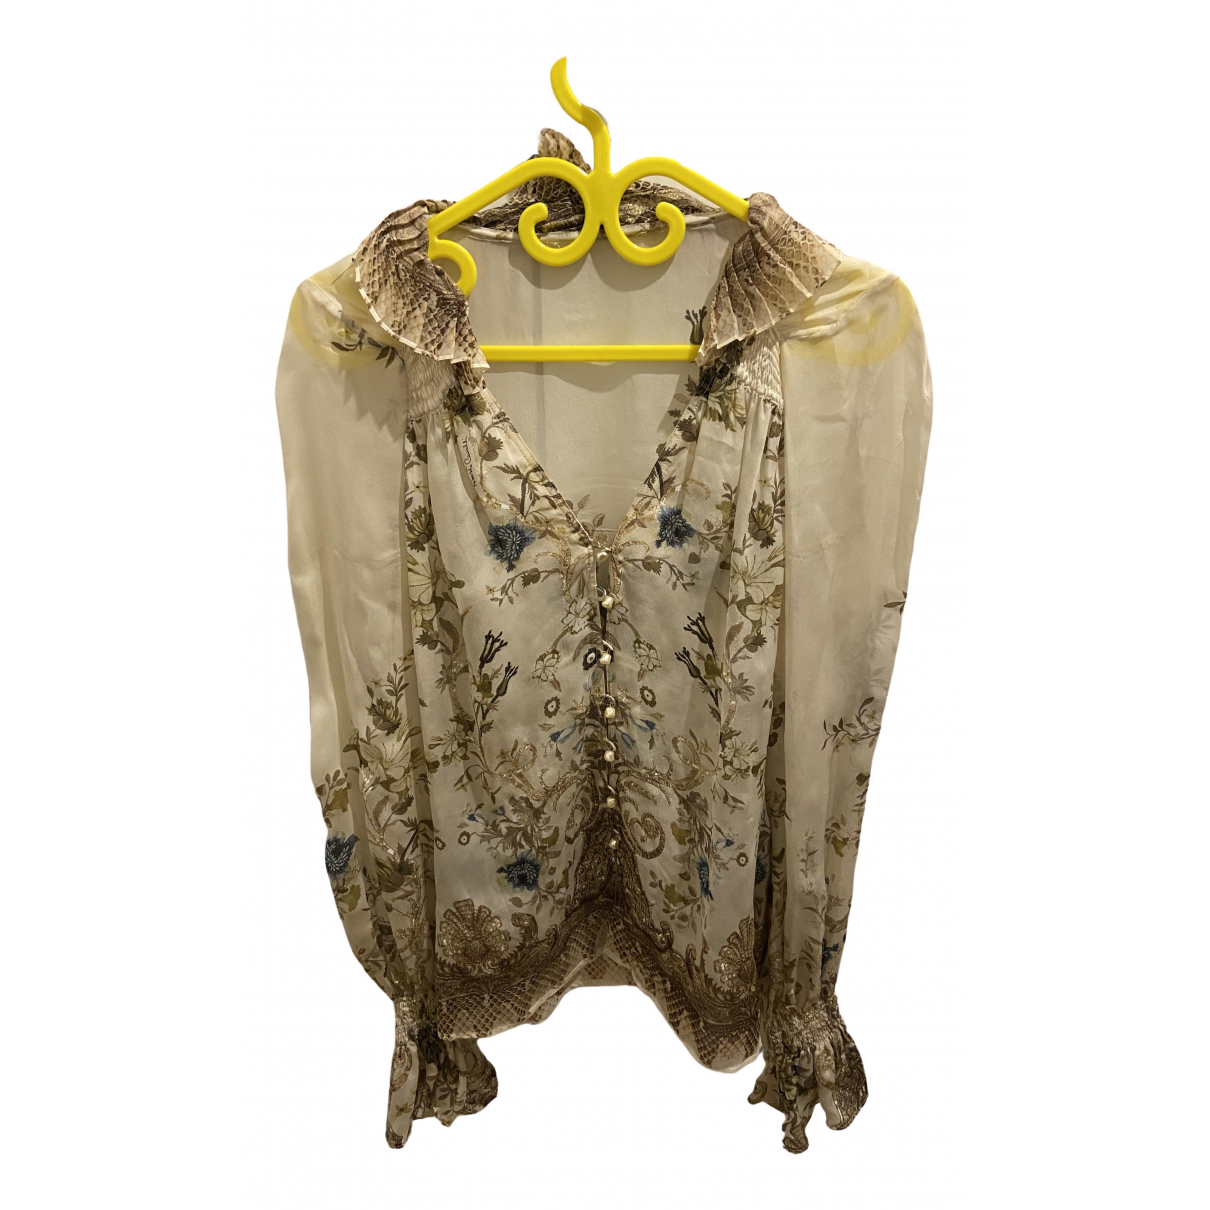 Roberto Cavalli \N Beige Silk  top for Women 40 IT